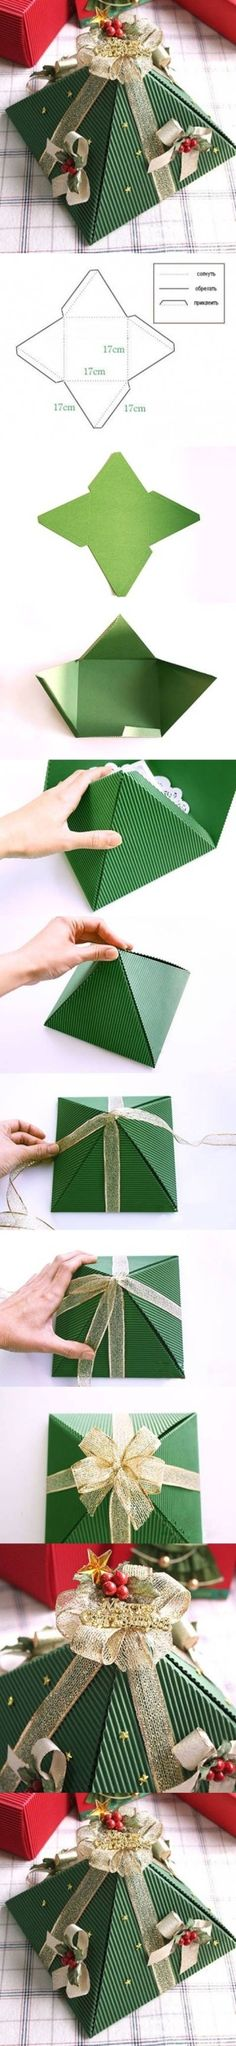 DIY Pyramid Christmas Gift Boxes diy craft crafts christmas how to tutorial craft gifts christmas gifts christmas crafts christmas craft gift ideas Christmas Gift Box, Christmas Gift Wrapping, Diy Paper, Paper Crafts, Navidad Diy, Christmas Decorations, Christmas Ornaments, Christmas Trees, Holiday Crafts